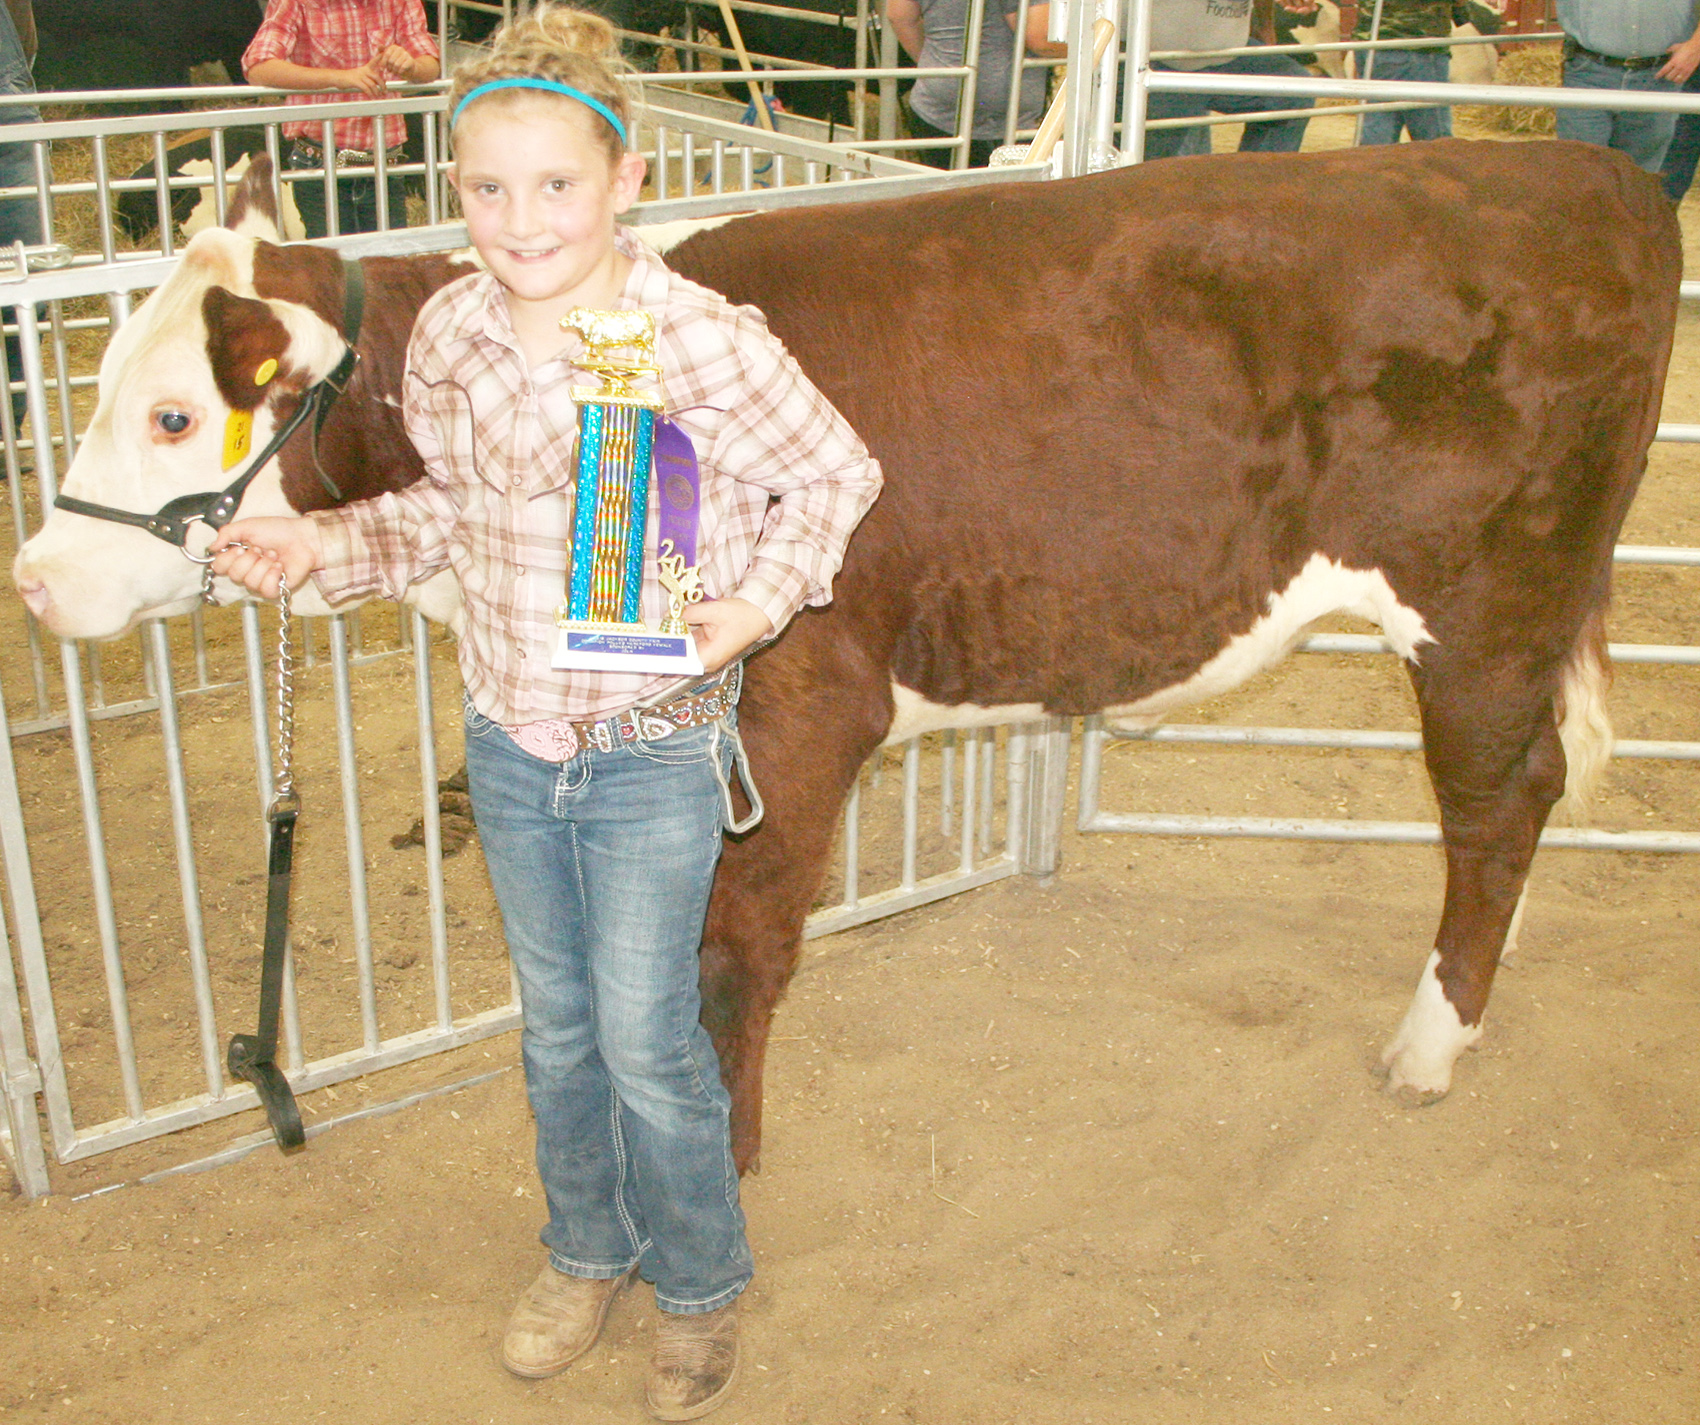 Jennifer Buck of the Soldier Boosters showed the top polled Hereford heifer at the beef show. (Photo by Brian Sanders)